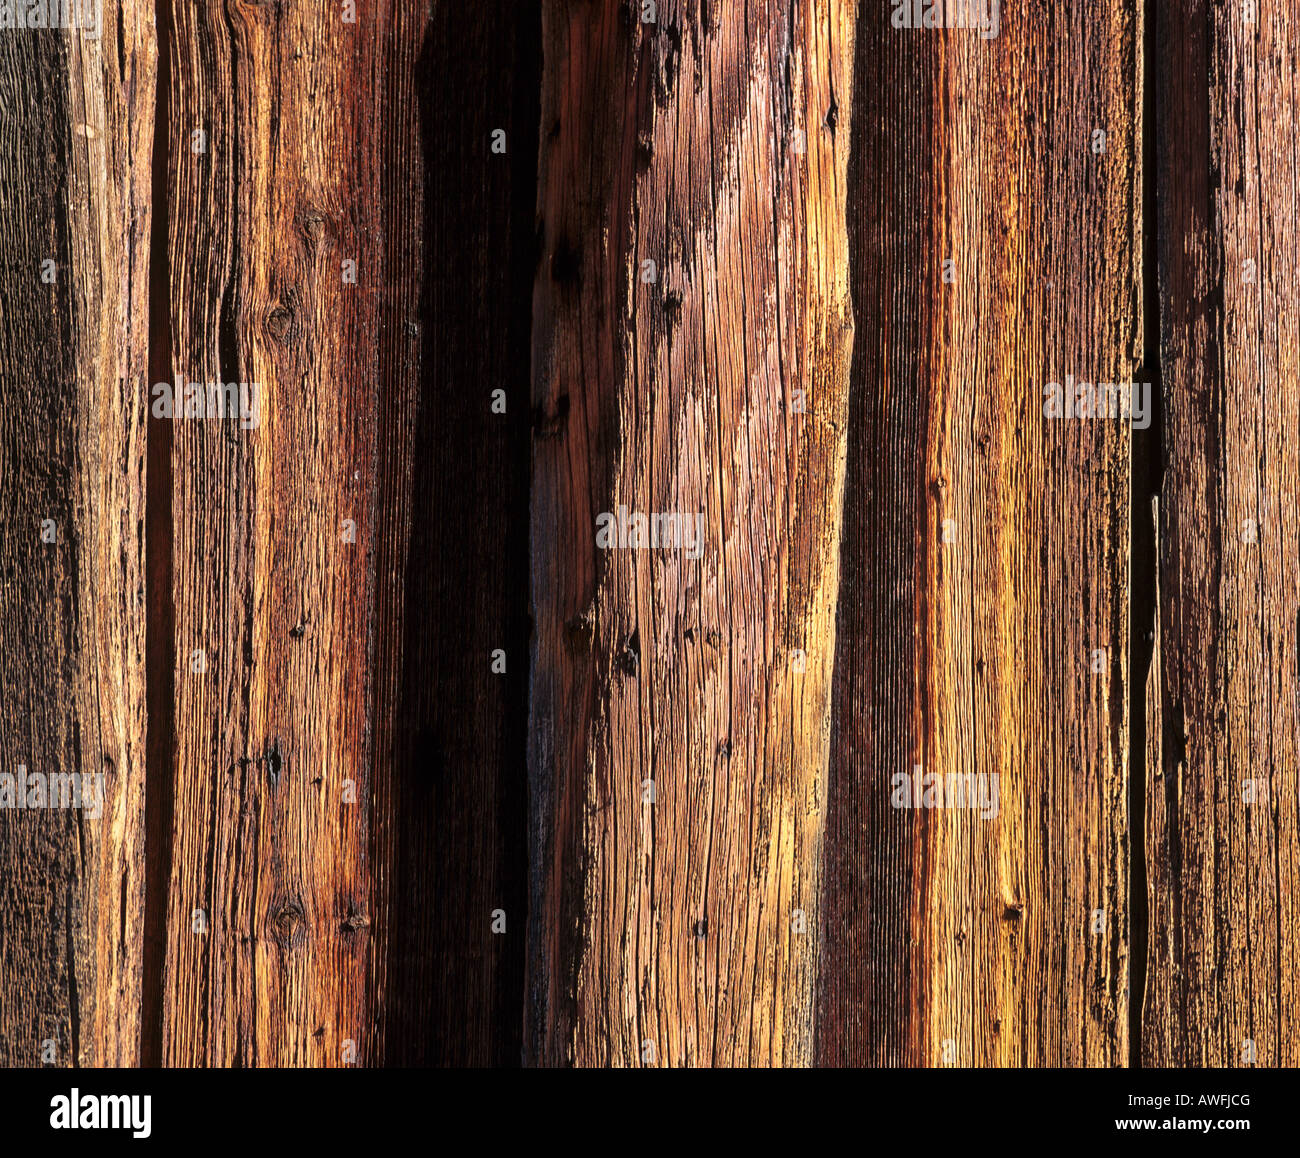 Weathered old wood barn, close-up - Stock Image